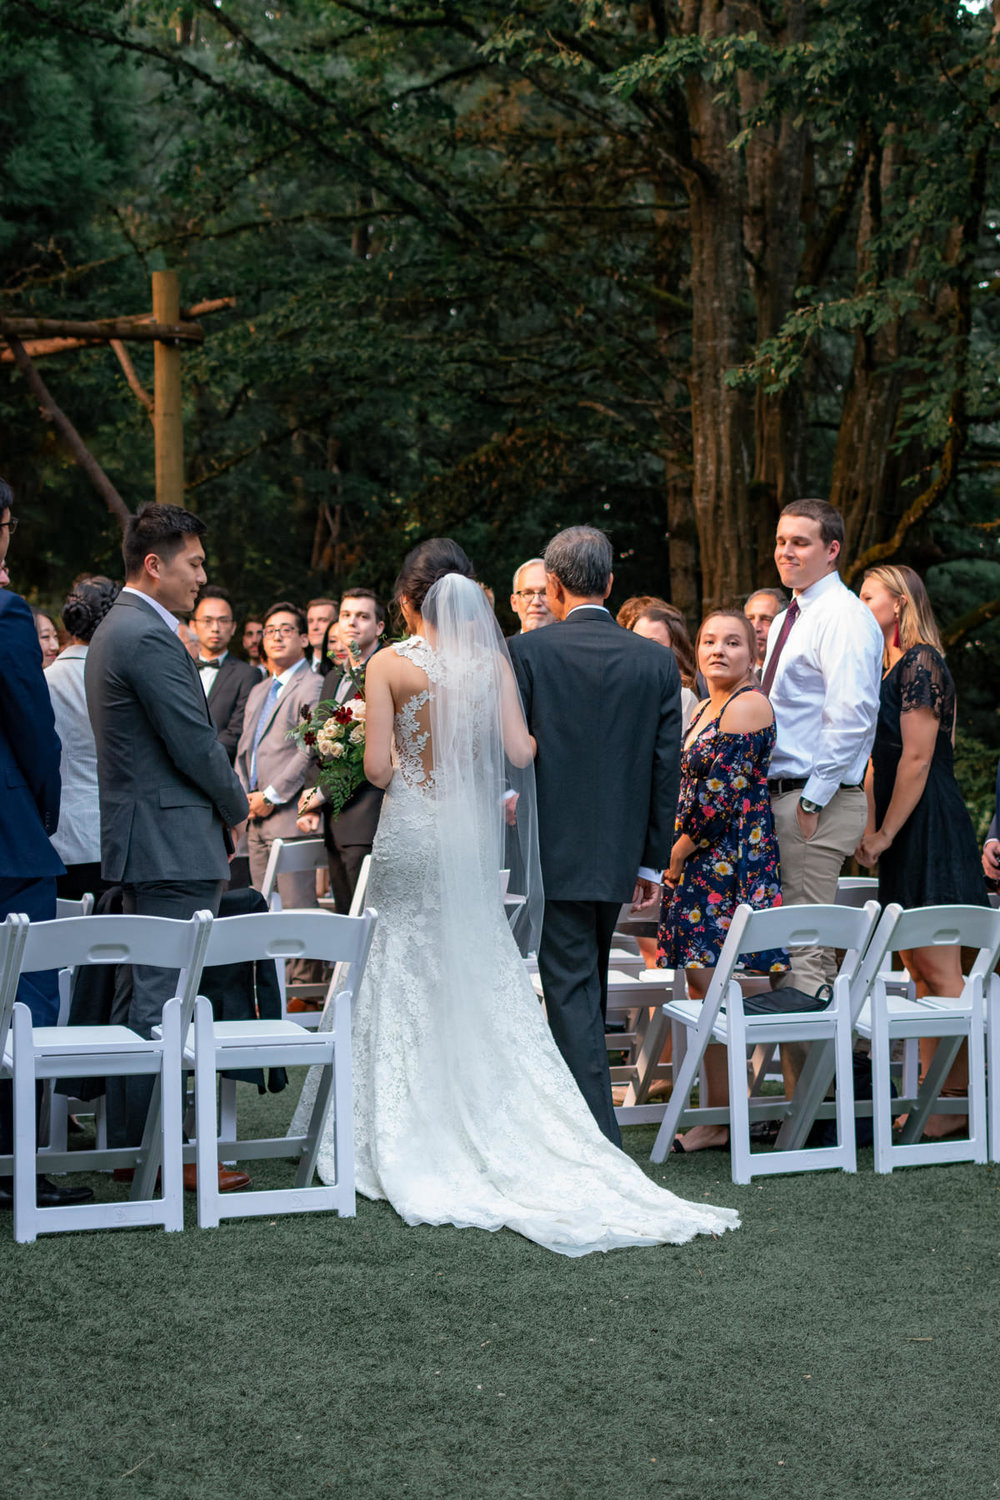 Andrew Tat - Documentary Wedding Photography - JM Cellars - Woodinville, Washington -Tammy & Aaron - 23.jpg